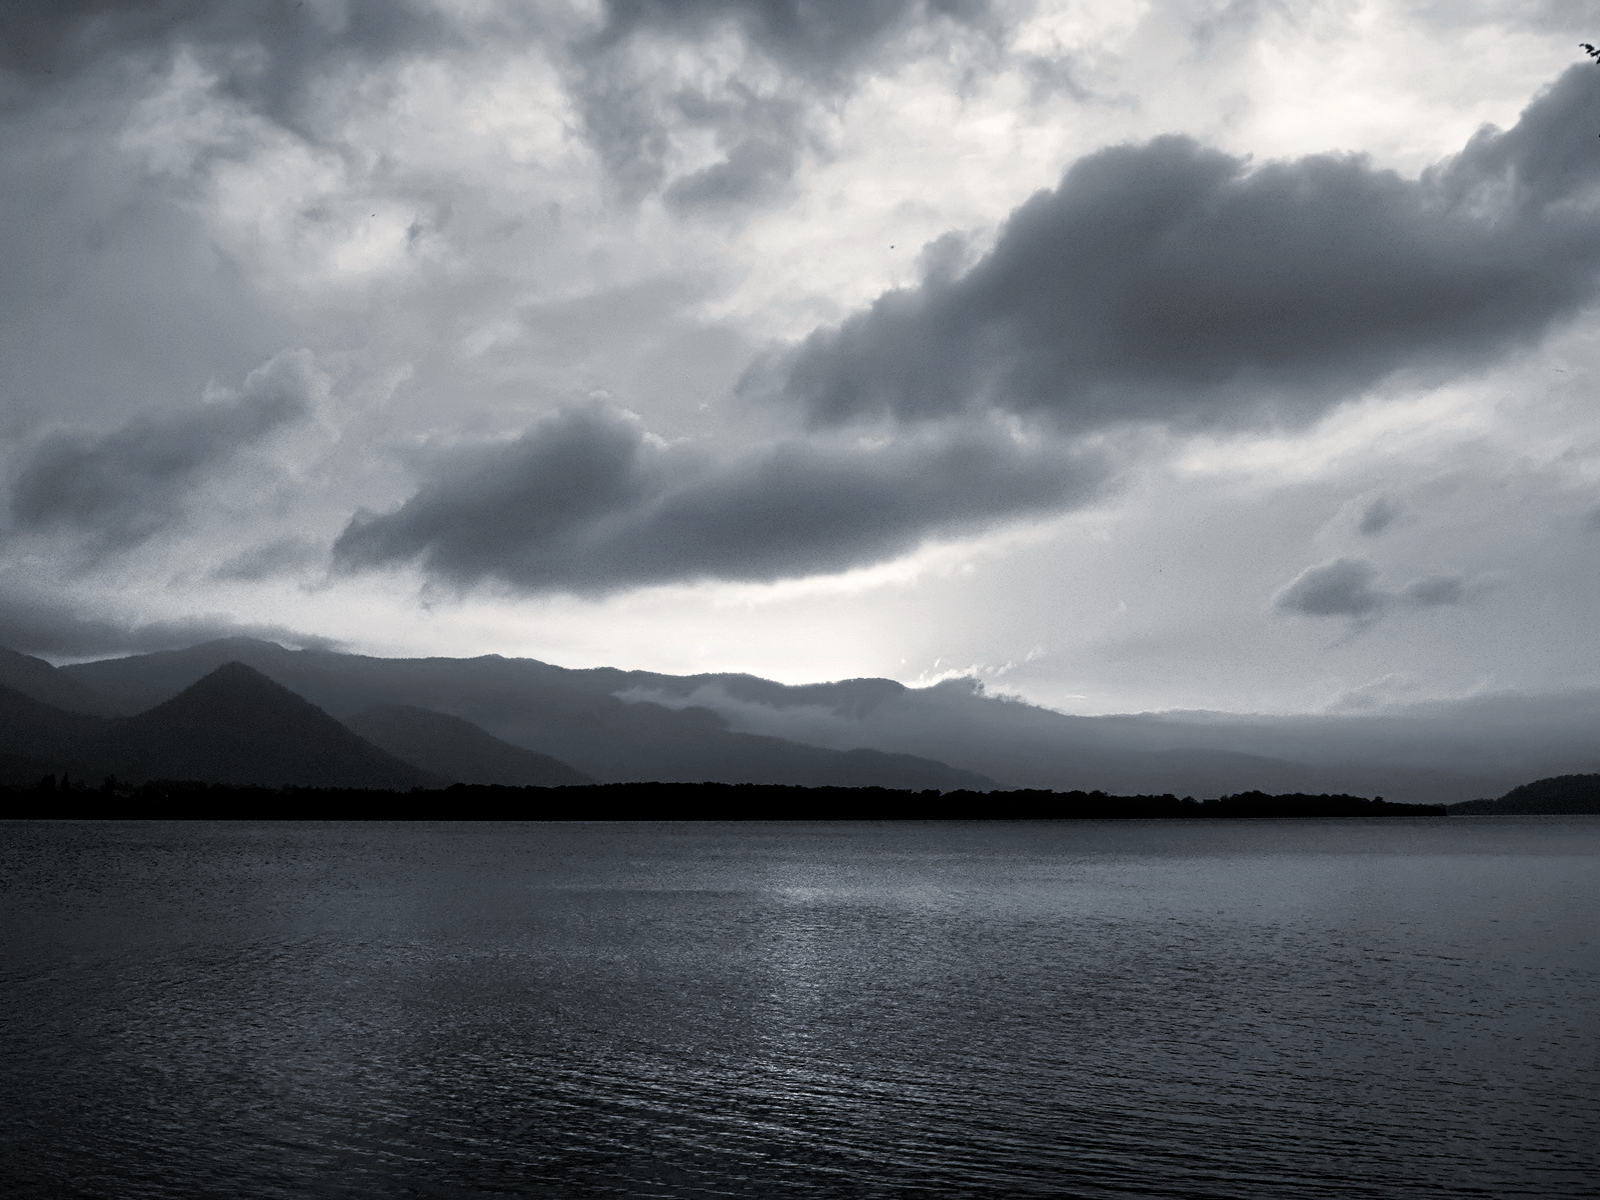 Black and White Sea Coast Clouds wallpaper – Some Thoughts on 966